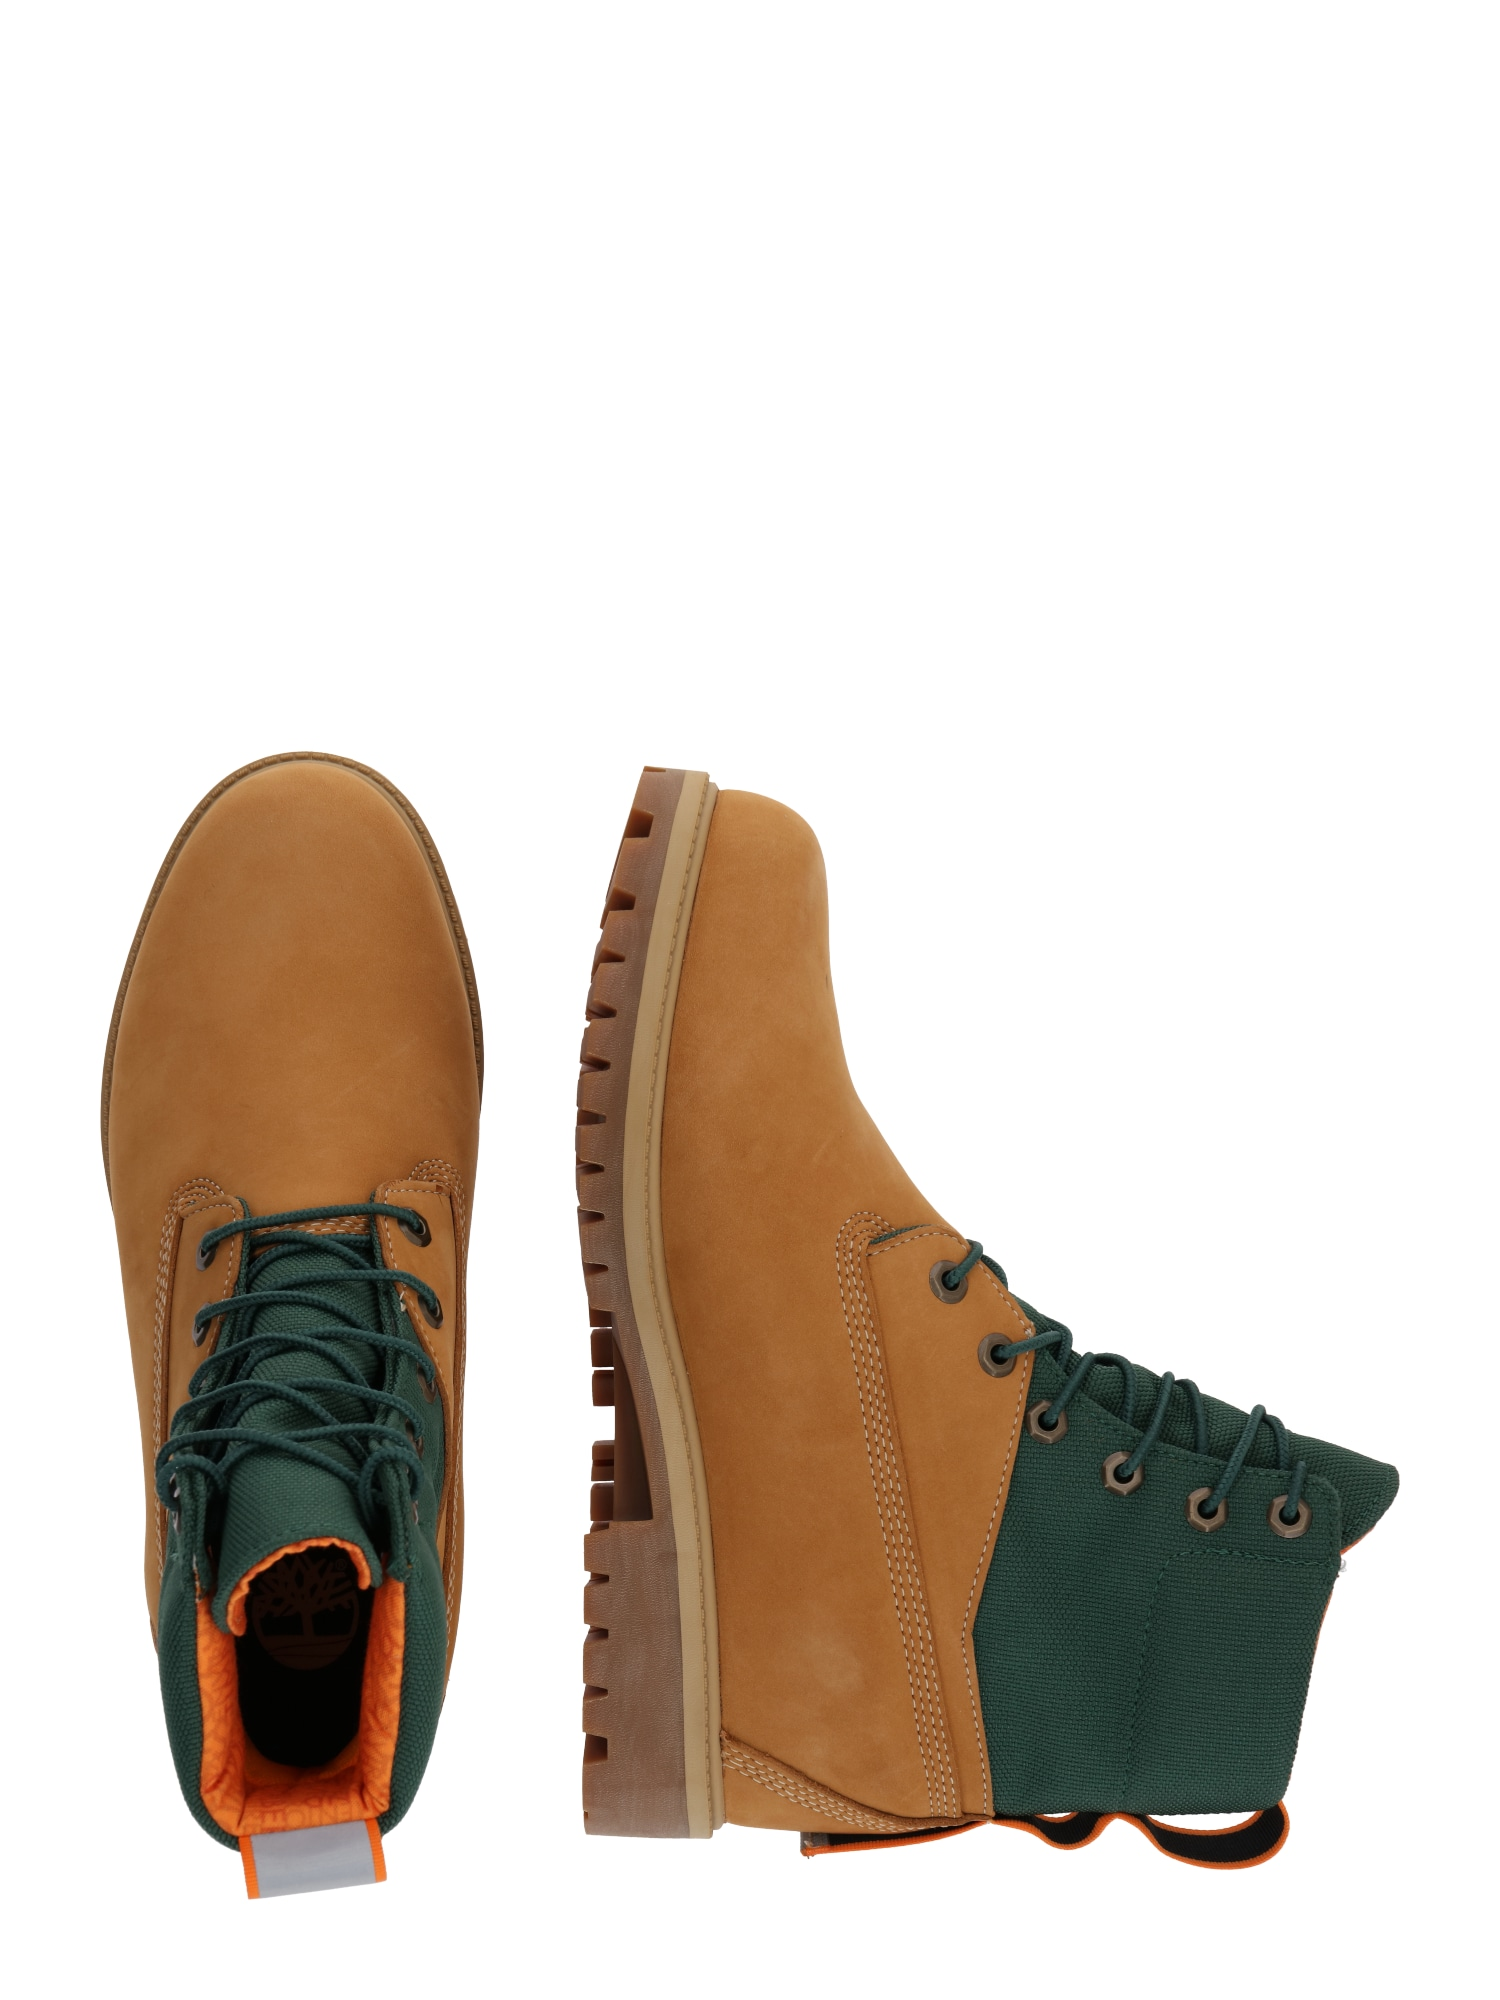 "timberland - Stiefel '6"" WP Treadlight'"